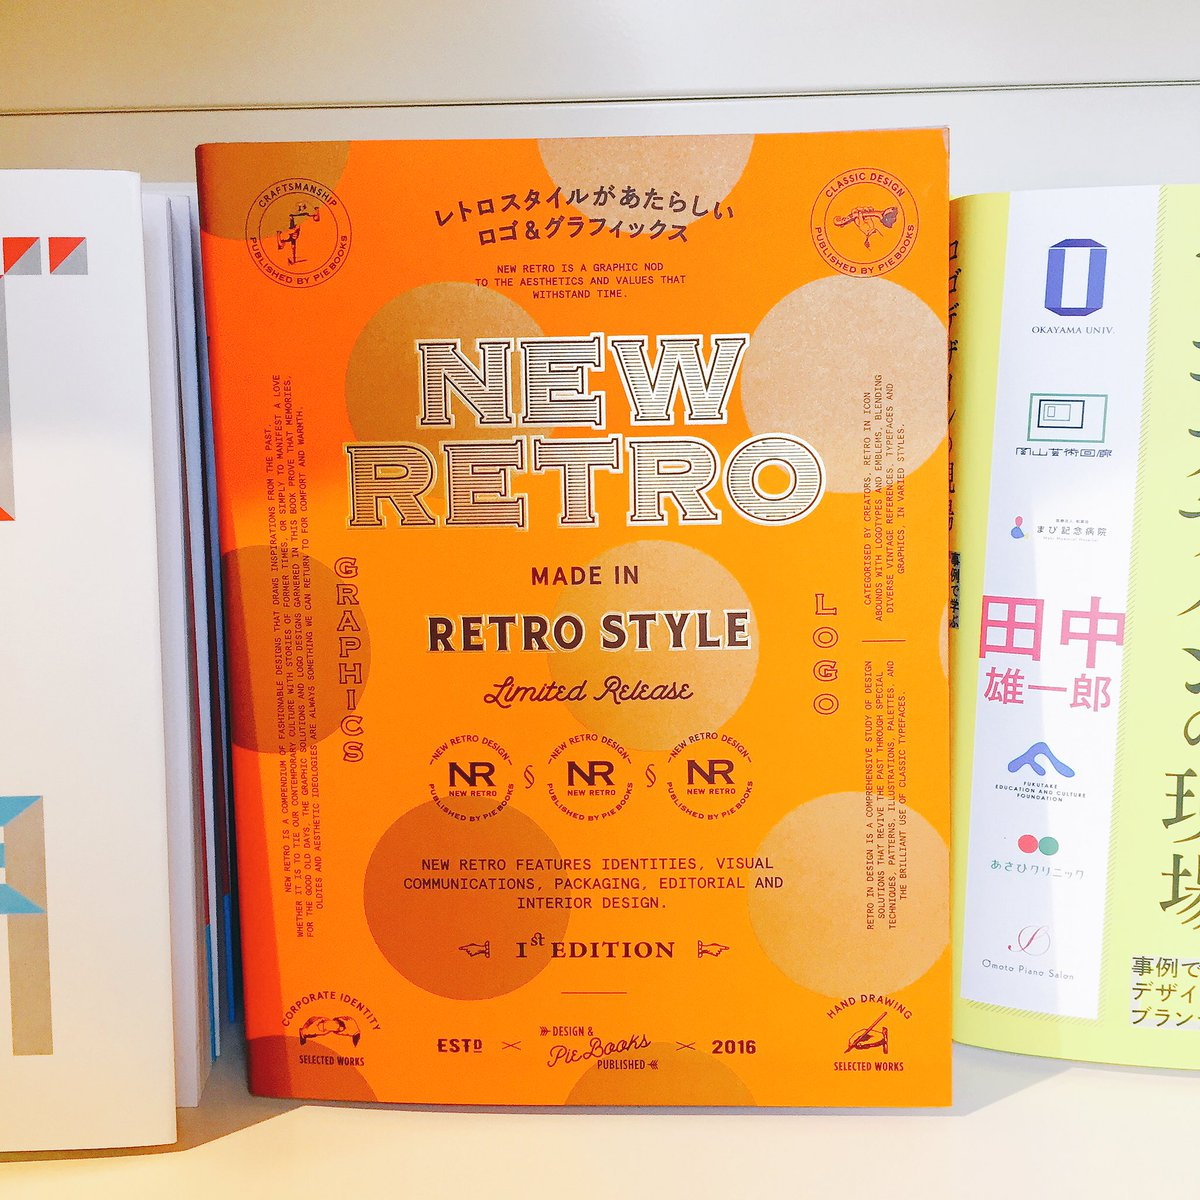 hmv books shibuya on twitter 7階デザイン new retro レトロ